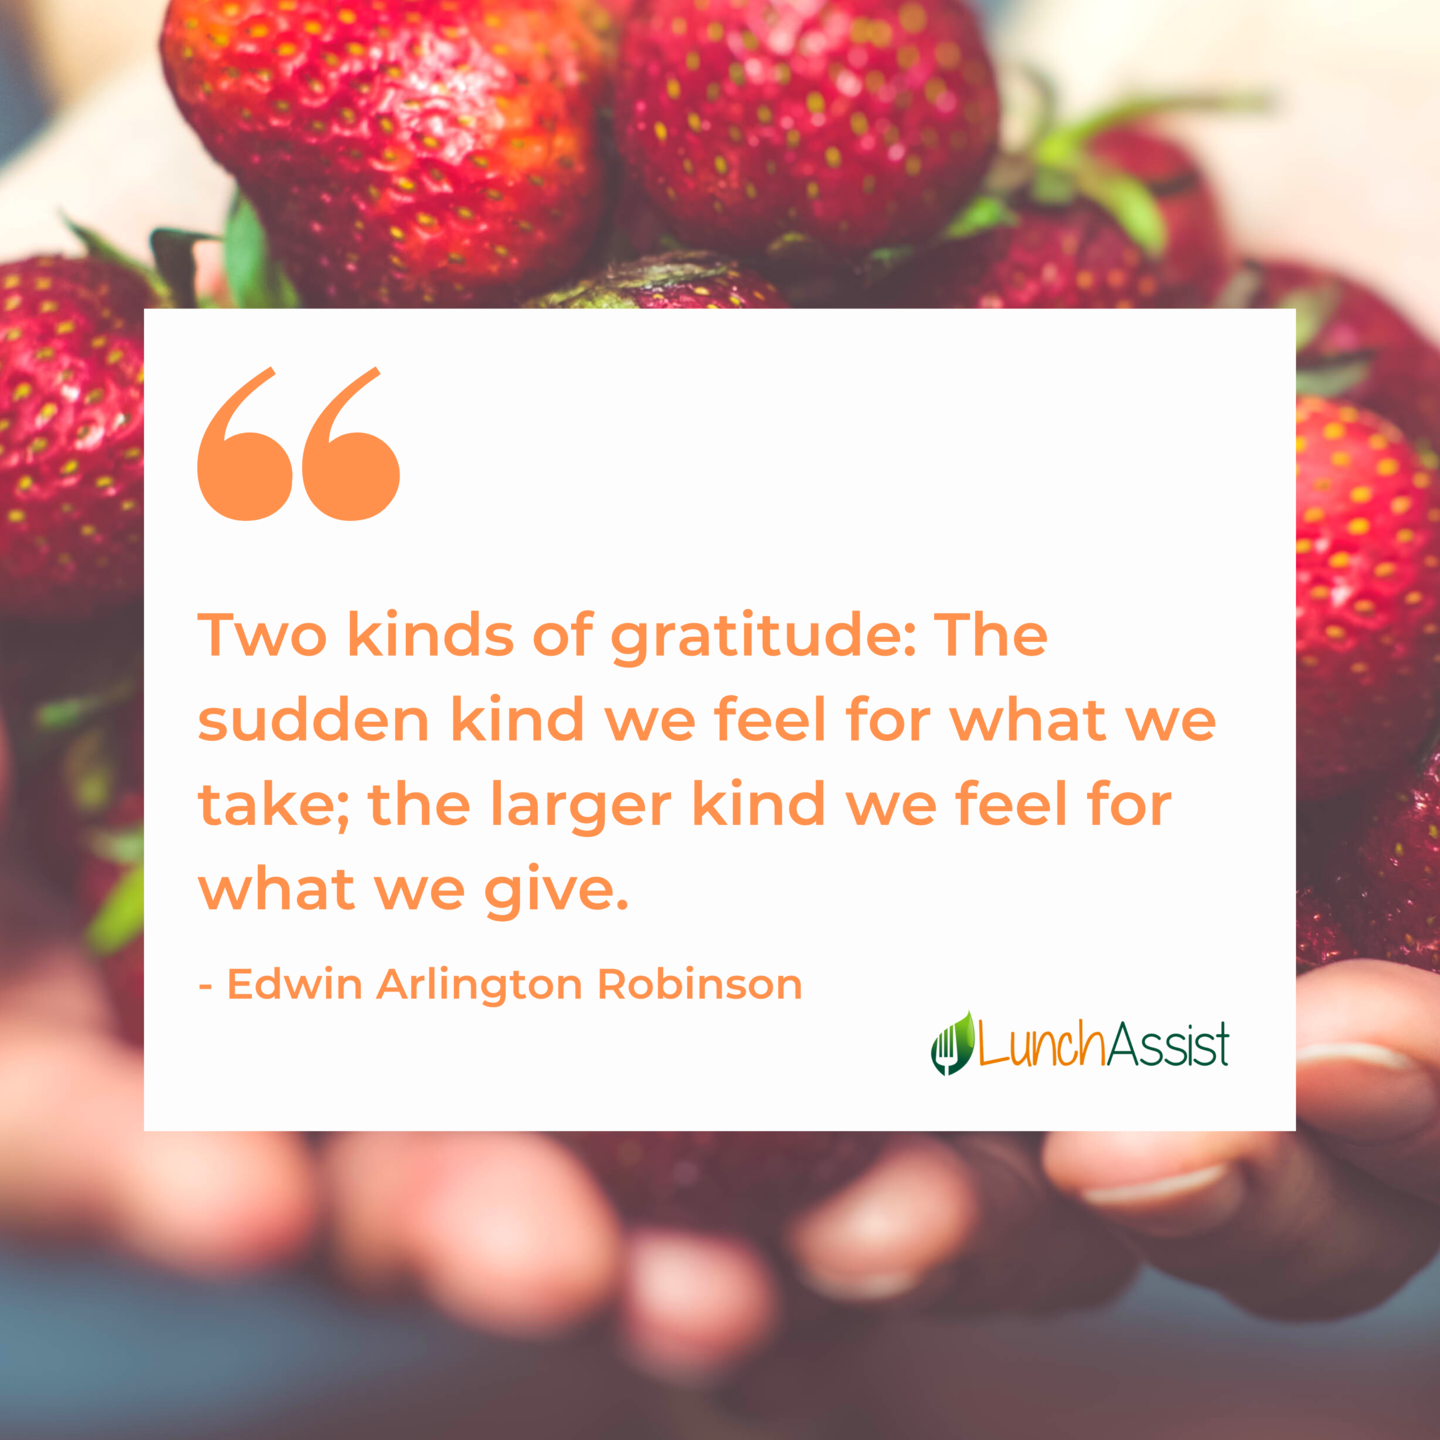 Two kinds of gratitude: the sudden kind we feel for what we take; the larger kind we feel for what we give.